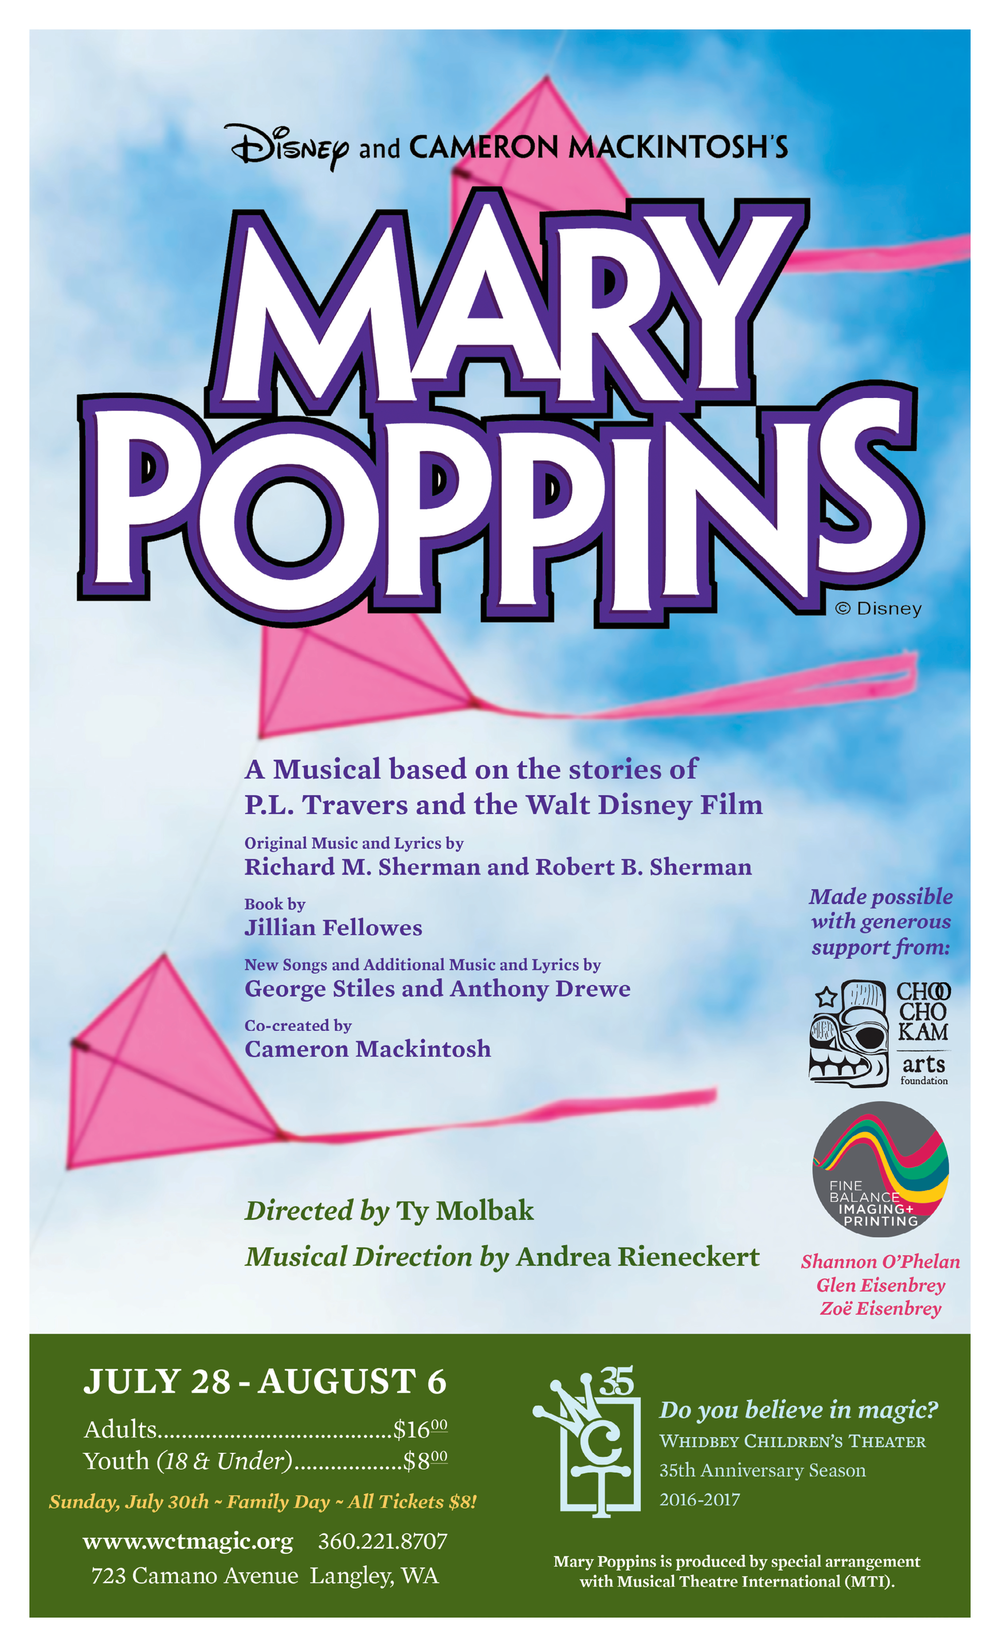 MaryPoppins_Poster-nosponsors.png